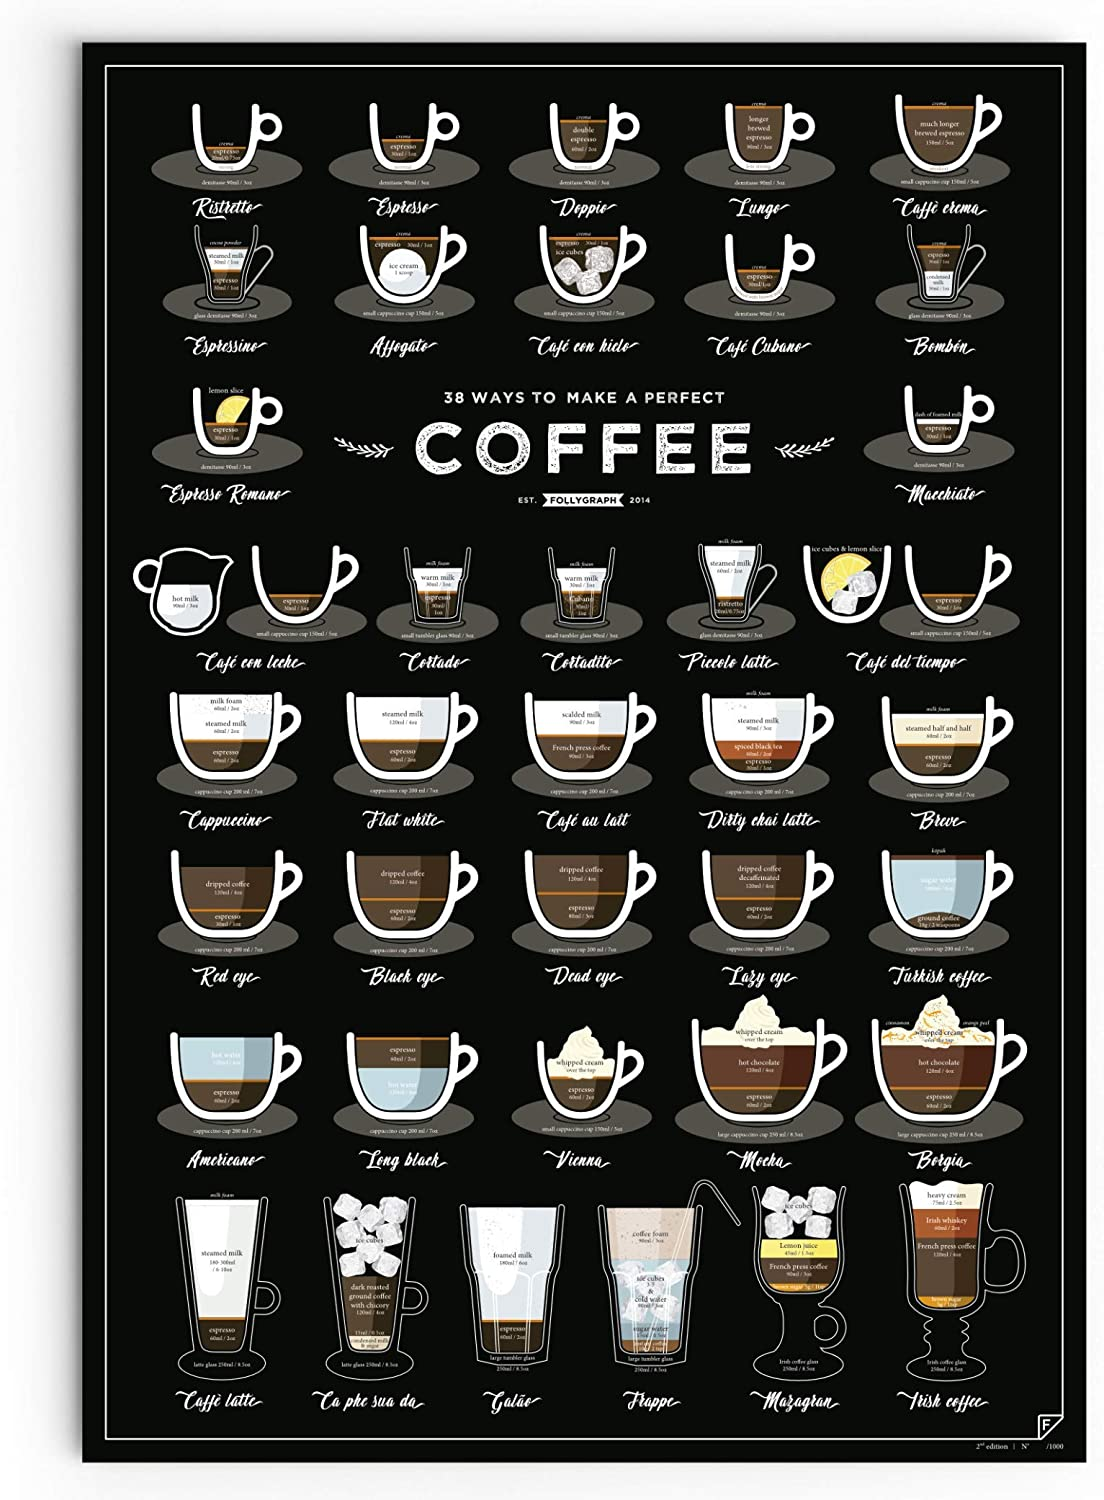 Follygraph Coffee Poster - 38 Ways To Make a Perfect Coffee - coffee art, pictures, print - size DIN A2 (A2)